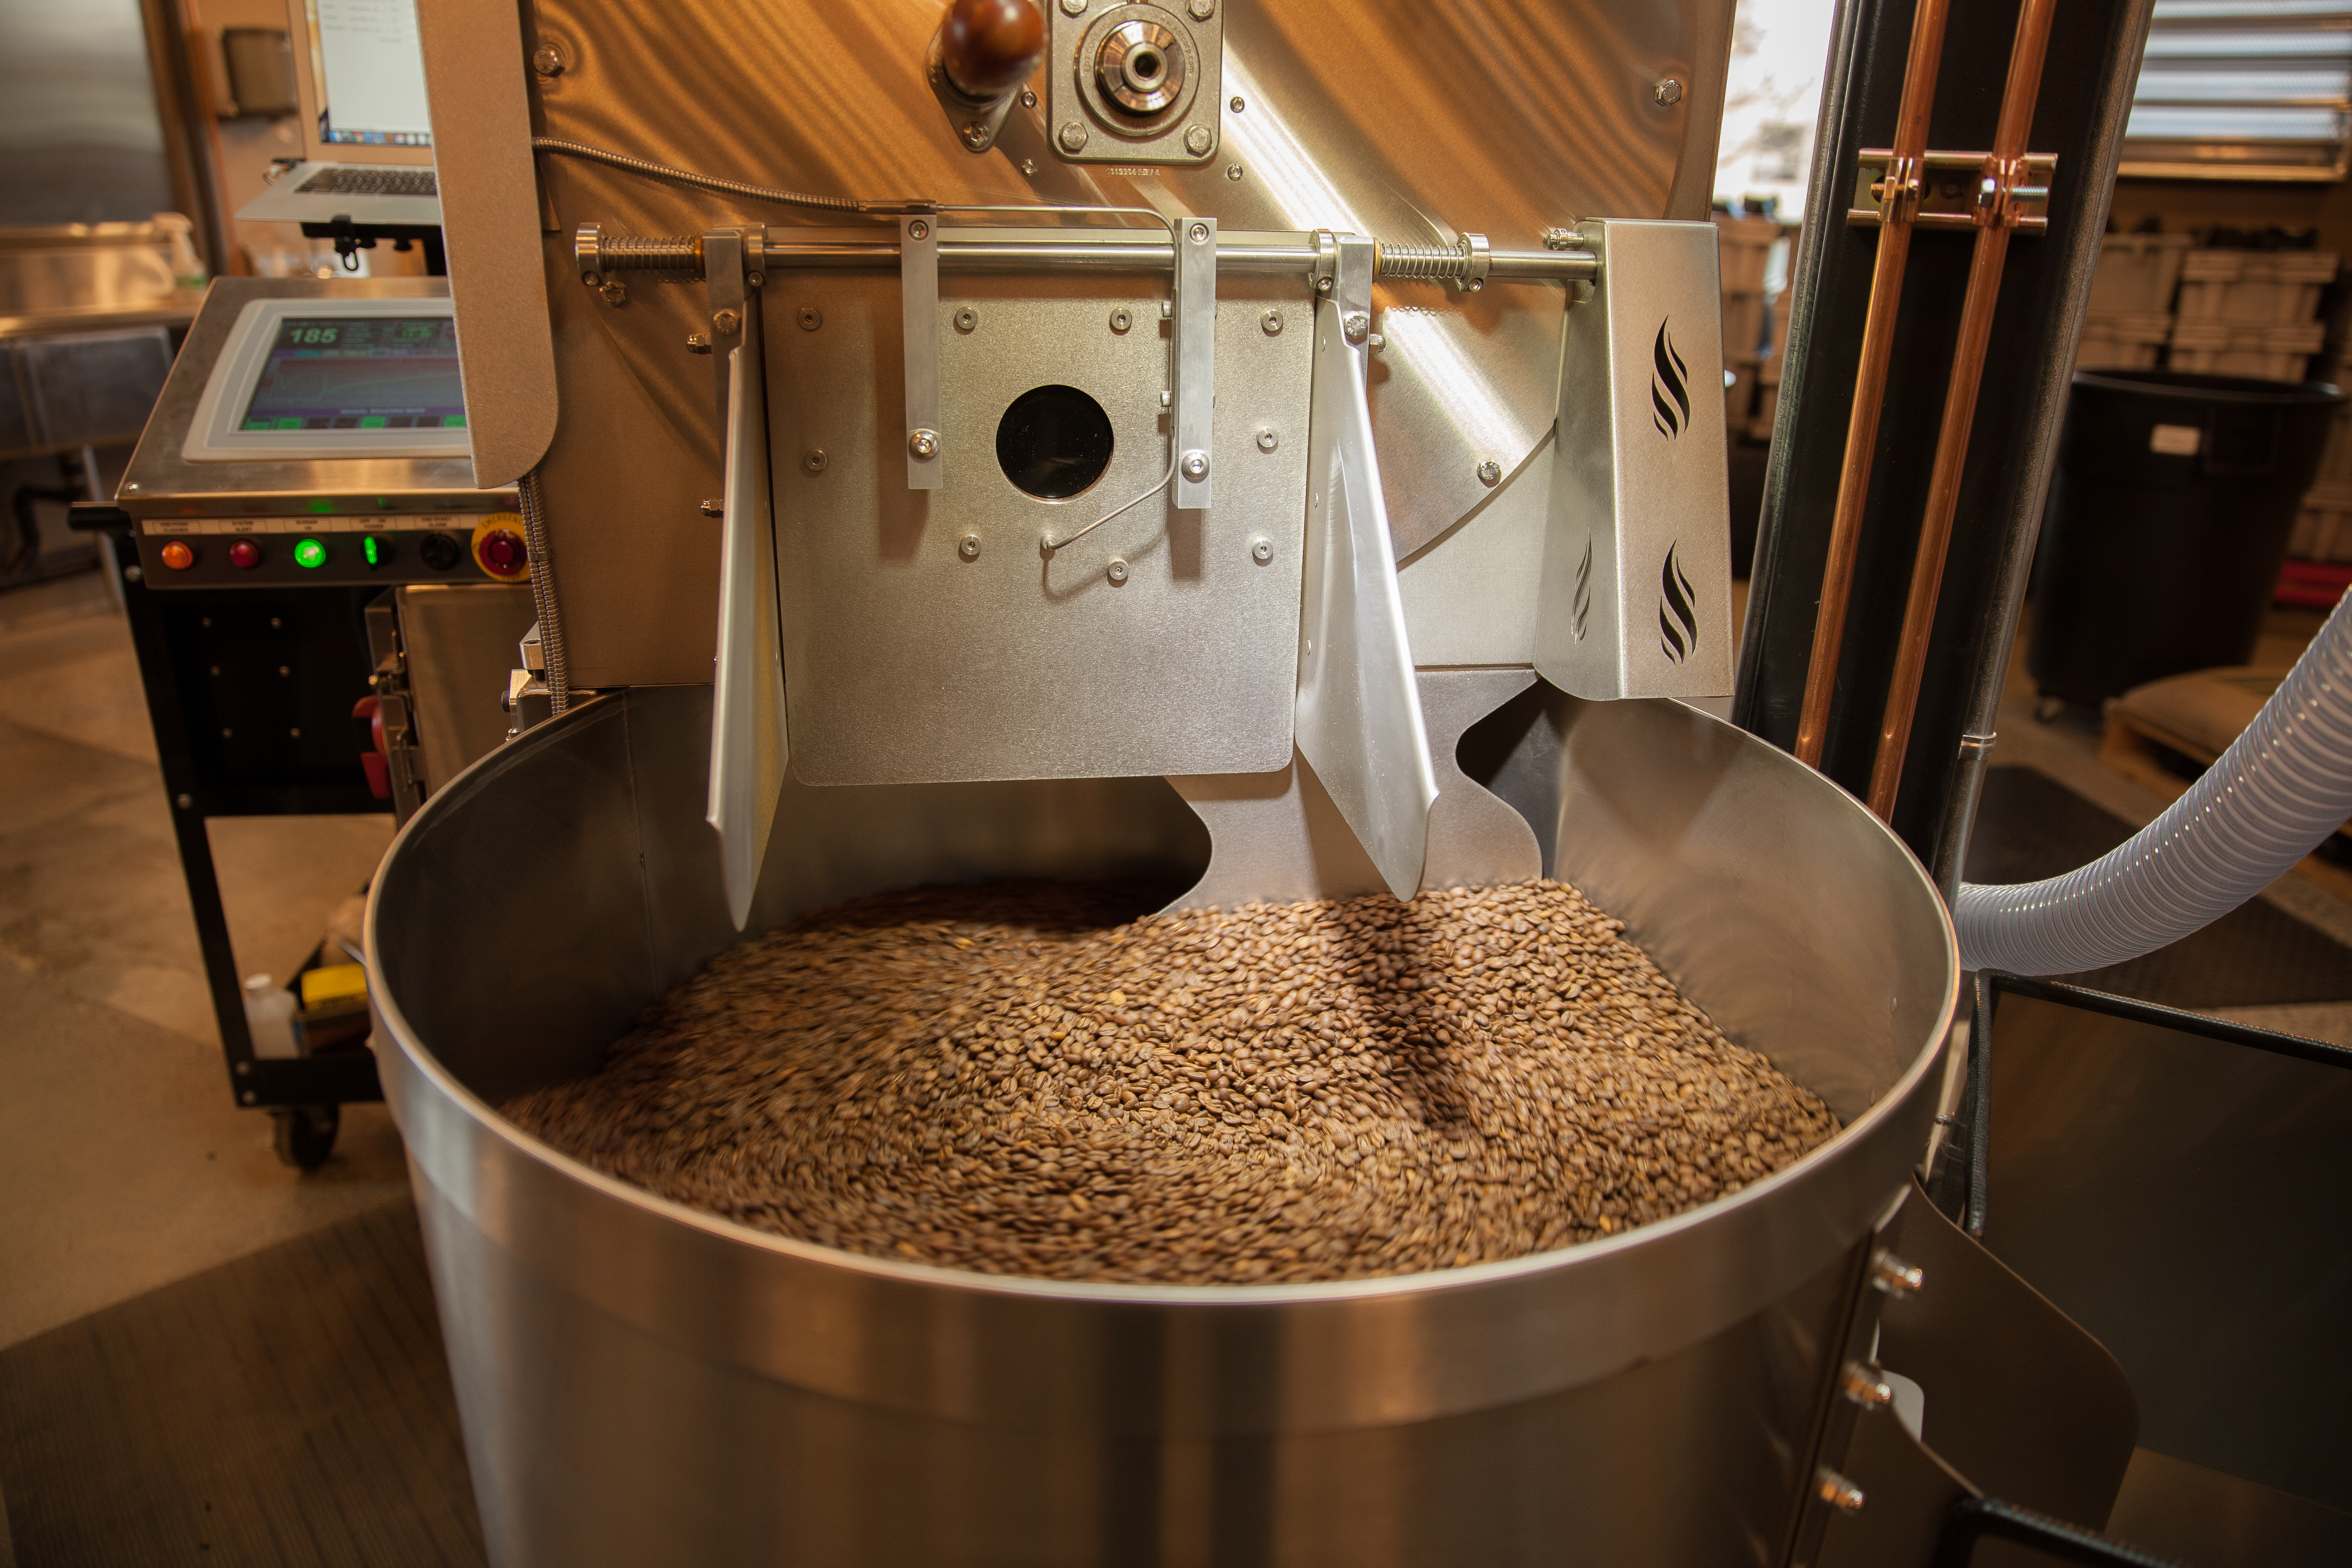 Woods Coffee: Commitment to Quality and Community